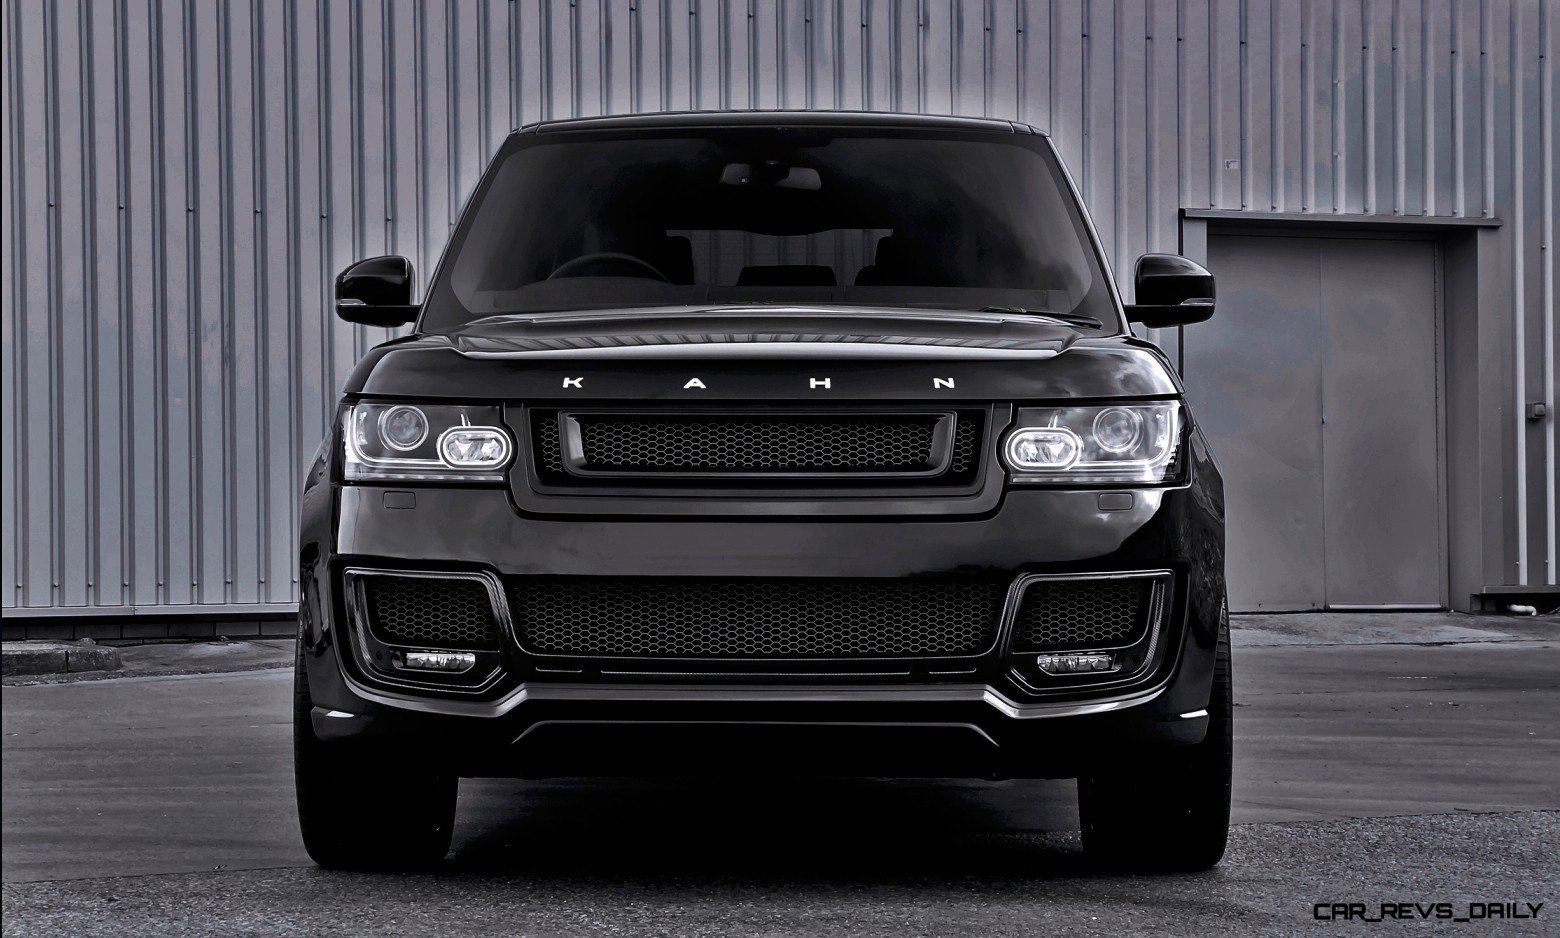 A KAHN-600LE-Upgrades-for-Current-Range-Rover-Are-Very-Special-and-Available-for-U